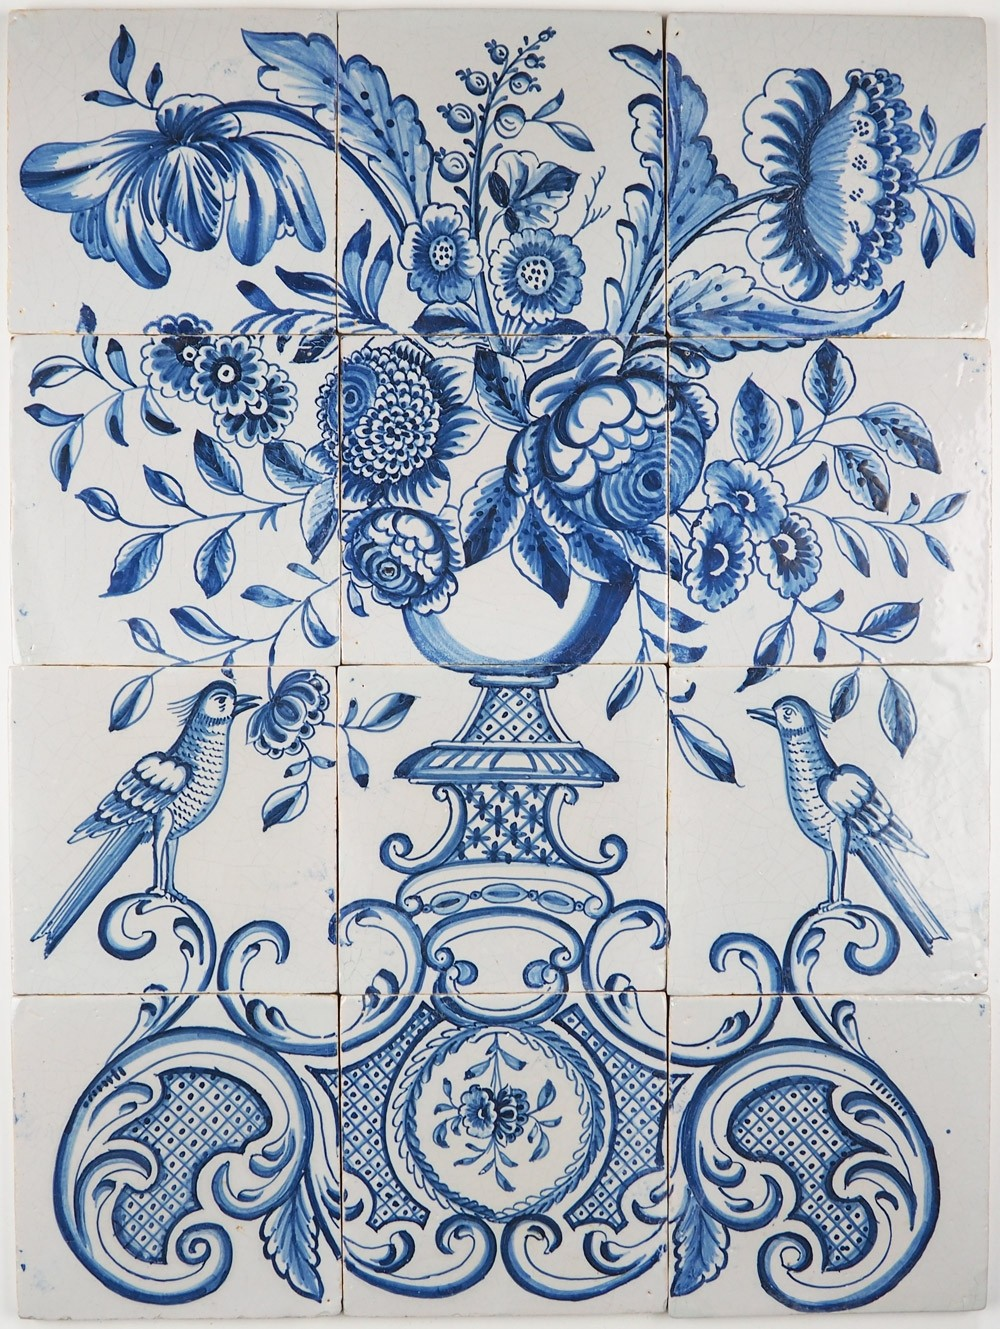 Antique delft tile mural with a richly decorated flower for Delft tile mural